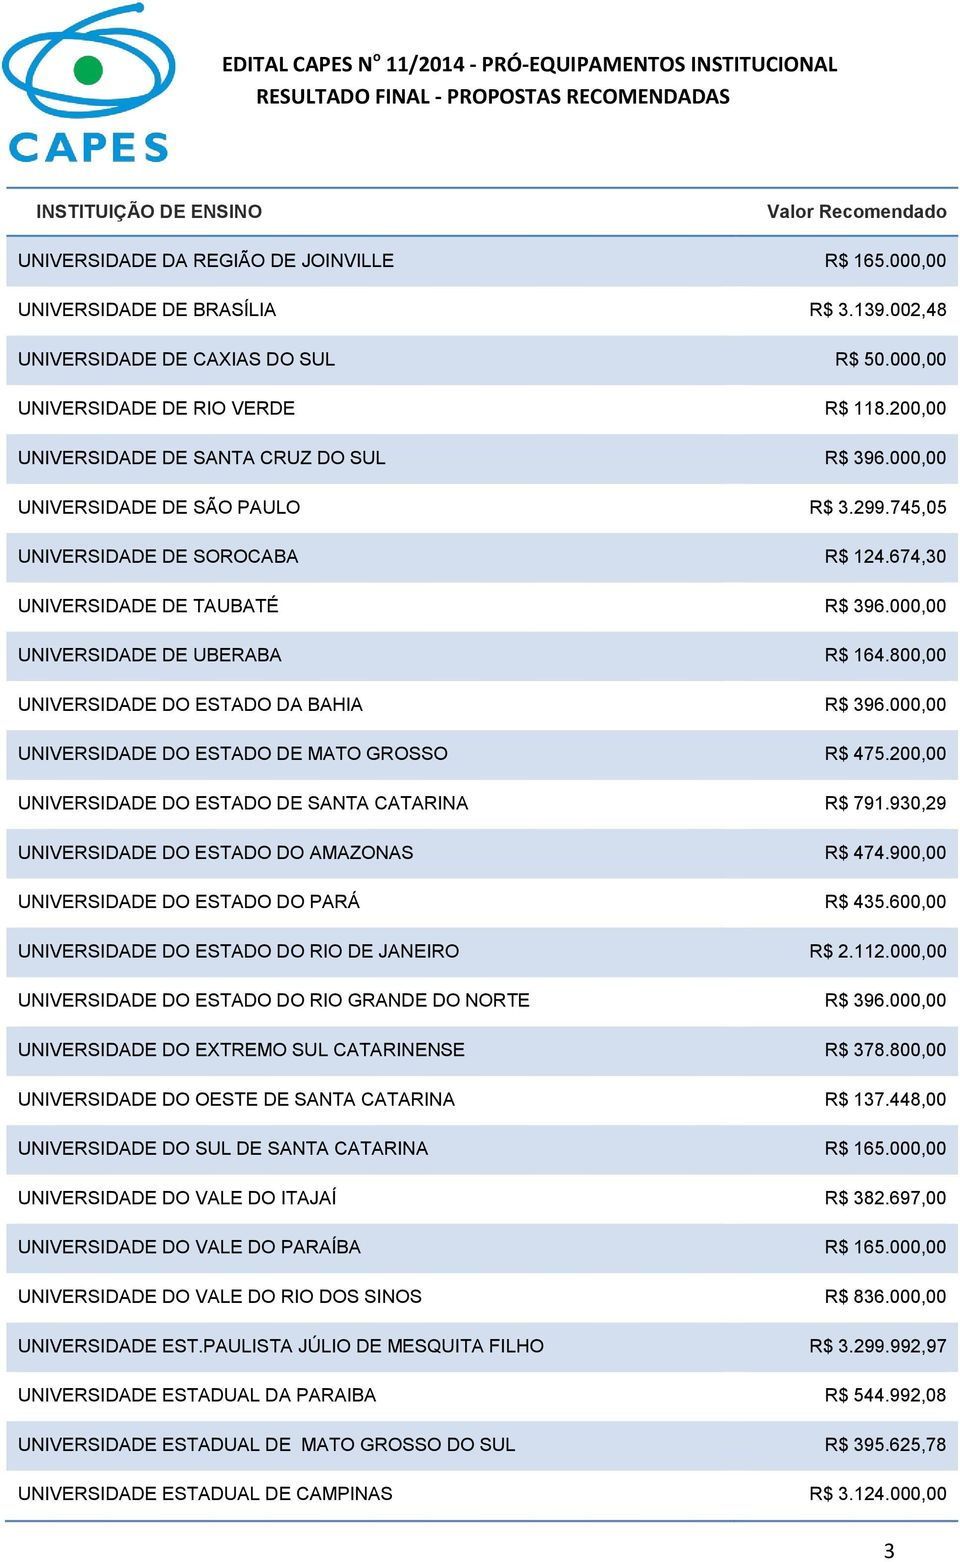 000,00 UNIVERSIDADE DE UBERABA R$ 164.800,00 UNIVERSIDADE DO ESTADO DA BAHIA R$ 396.000,00 UNIVERSIDADE DO ESTADO DE MATO GROSSO R$ 475.200,00 UNIVERSIDADE DO ESTADO DE SANTA CATARINA R$ 791.